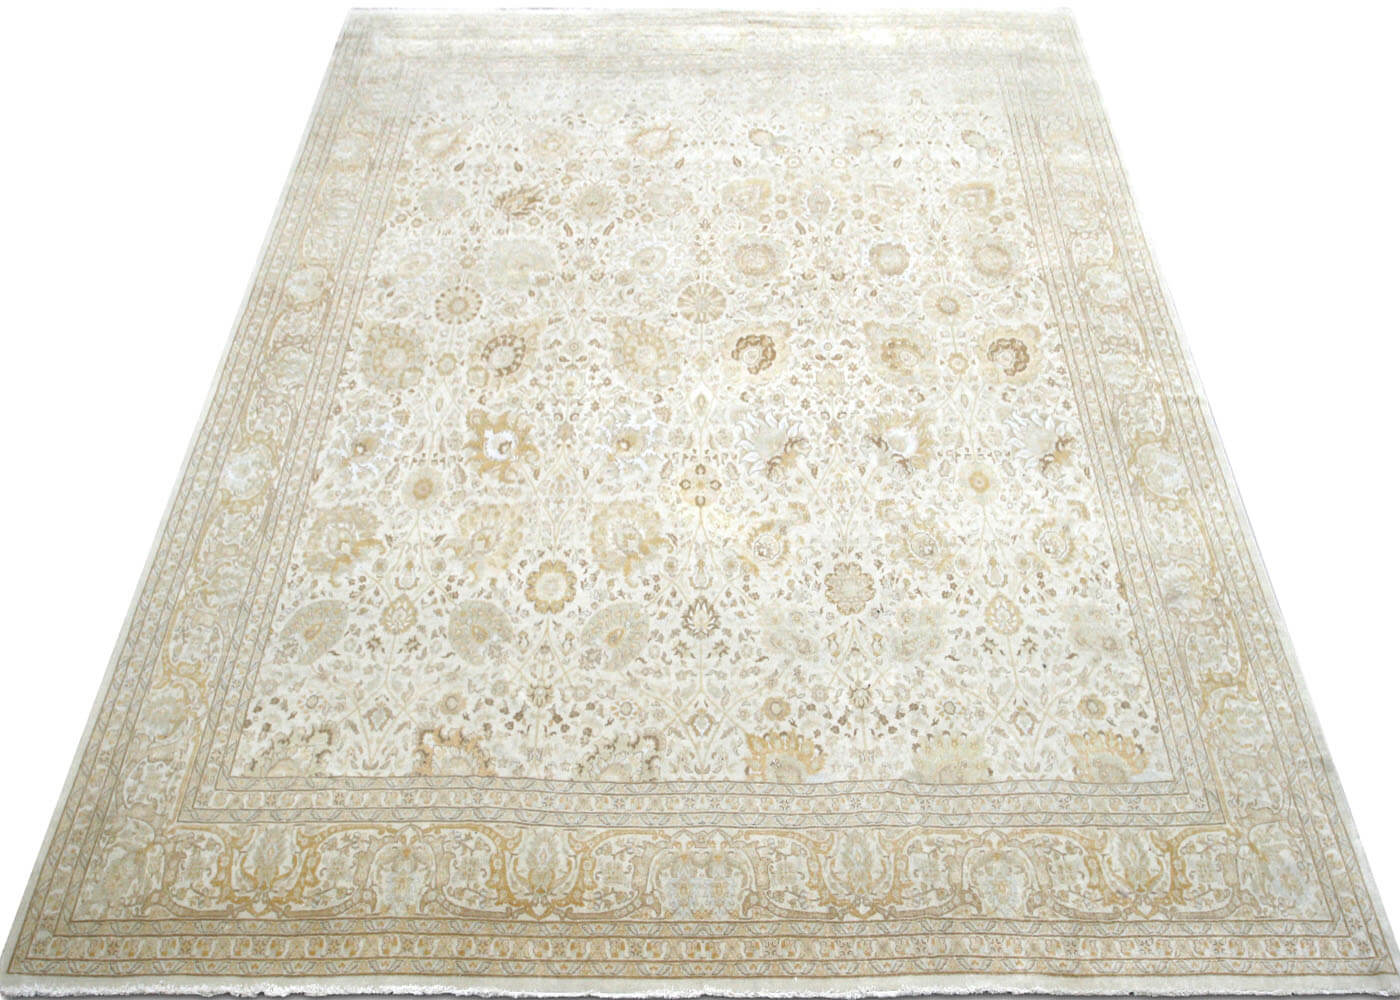 "Vintage Persian Tabriz Carpet - 11'9"" x 15'4"""